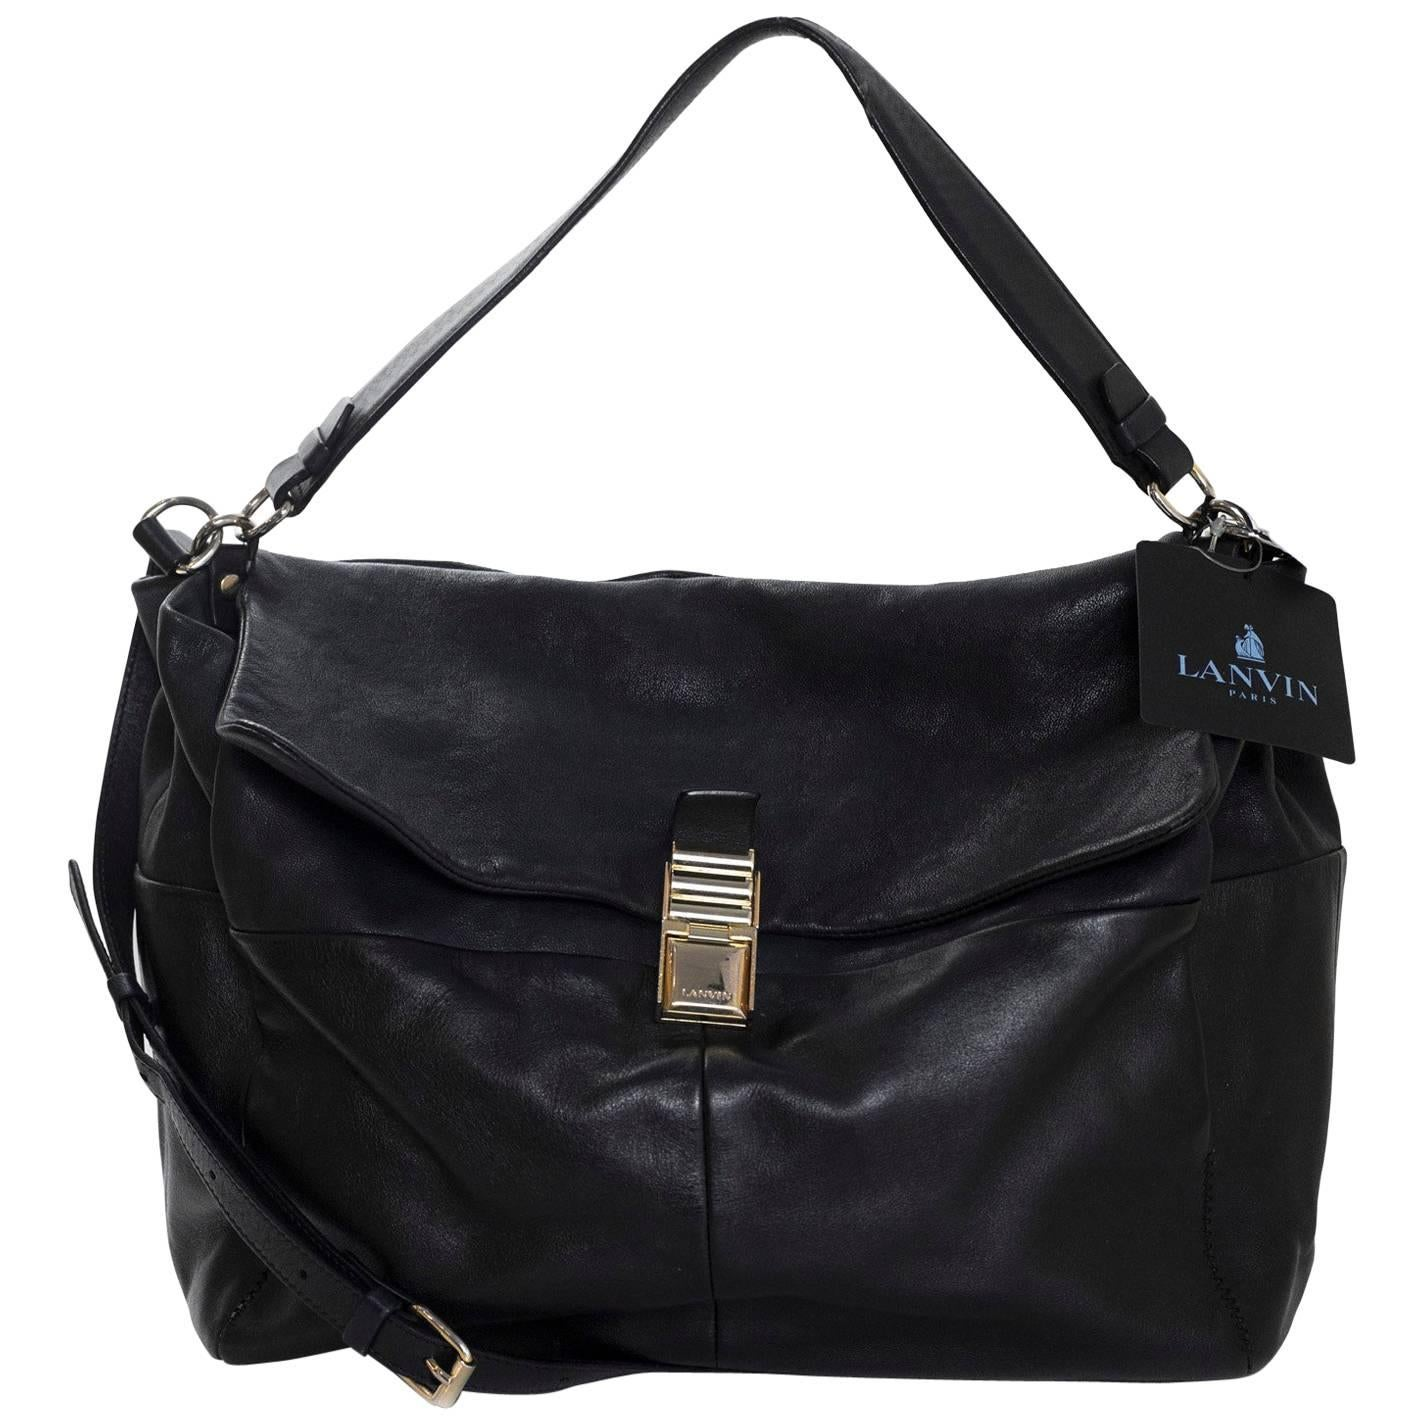 1stdibs Lanvin Black Leather For Me Satchel Bag Rt. $2,200